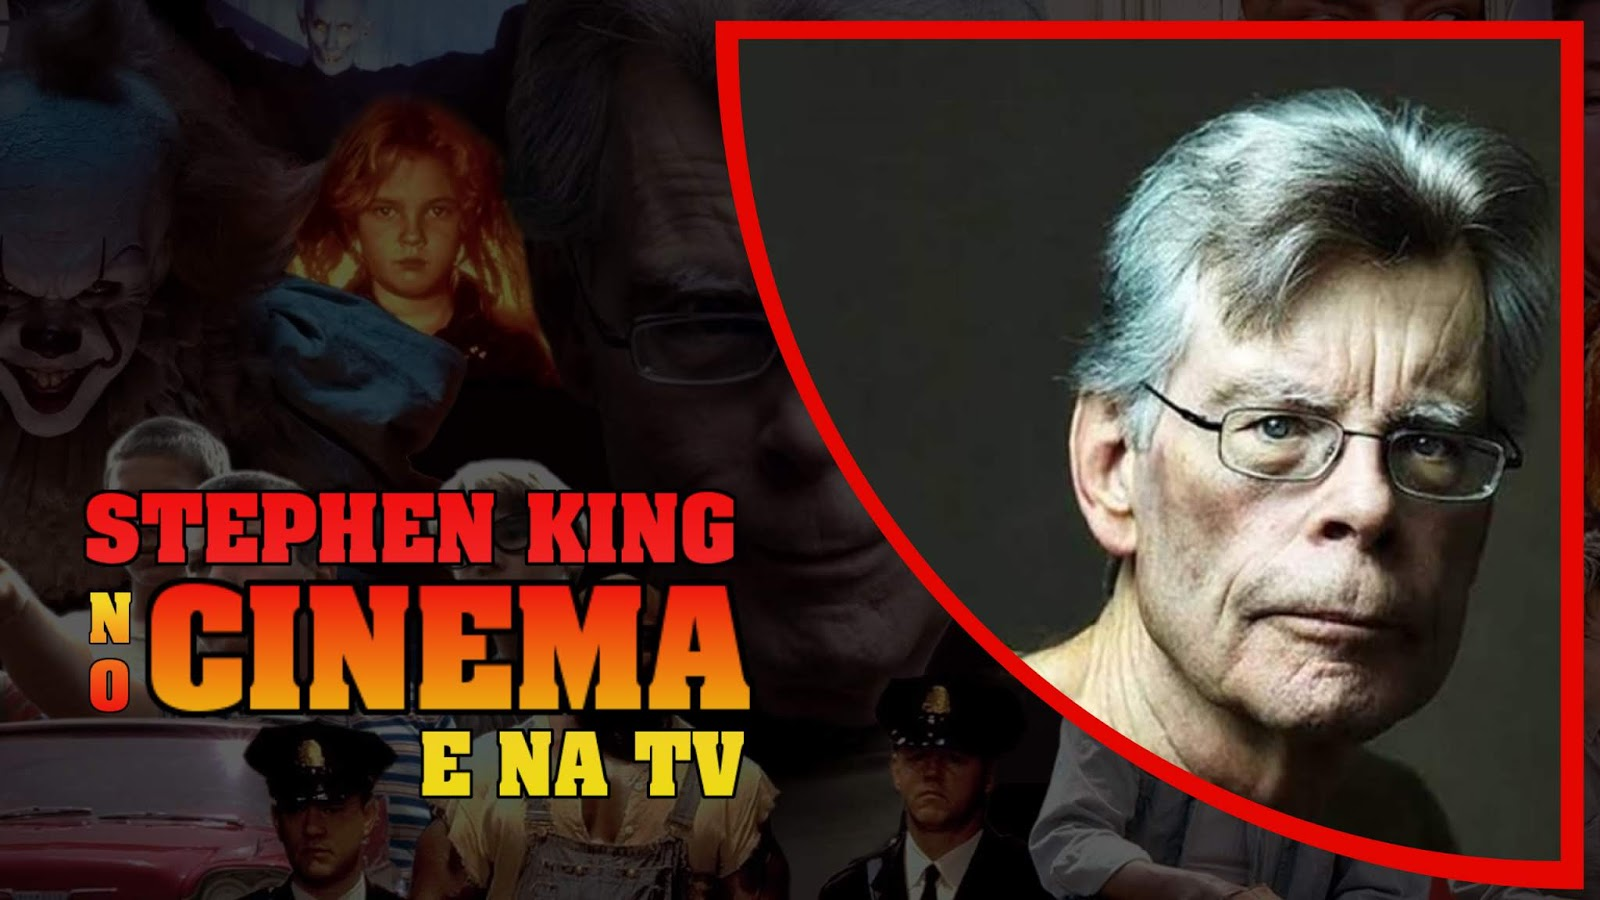 stephen-king-no-cinema-tv.